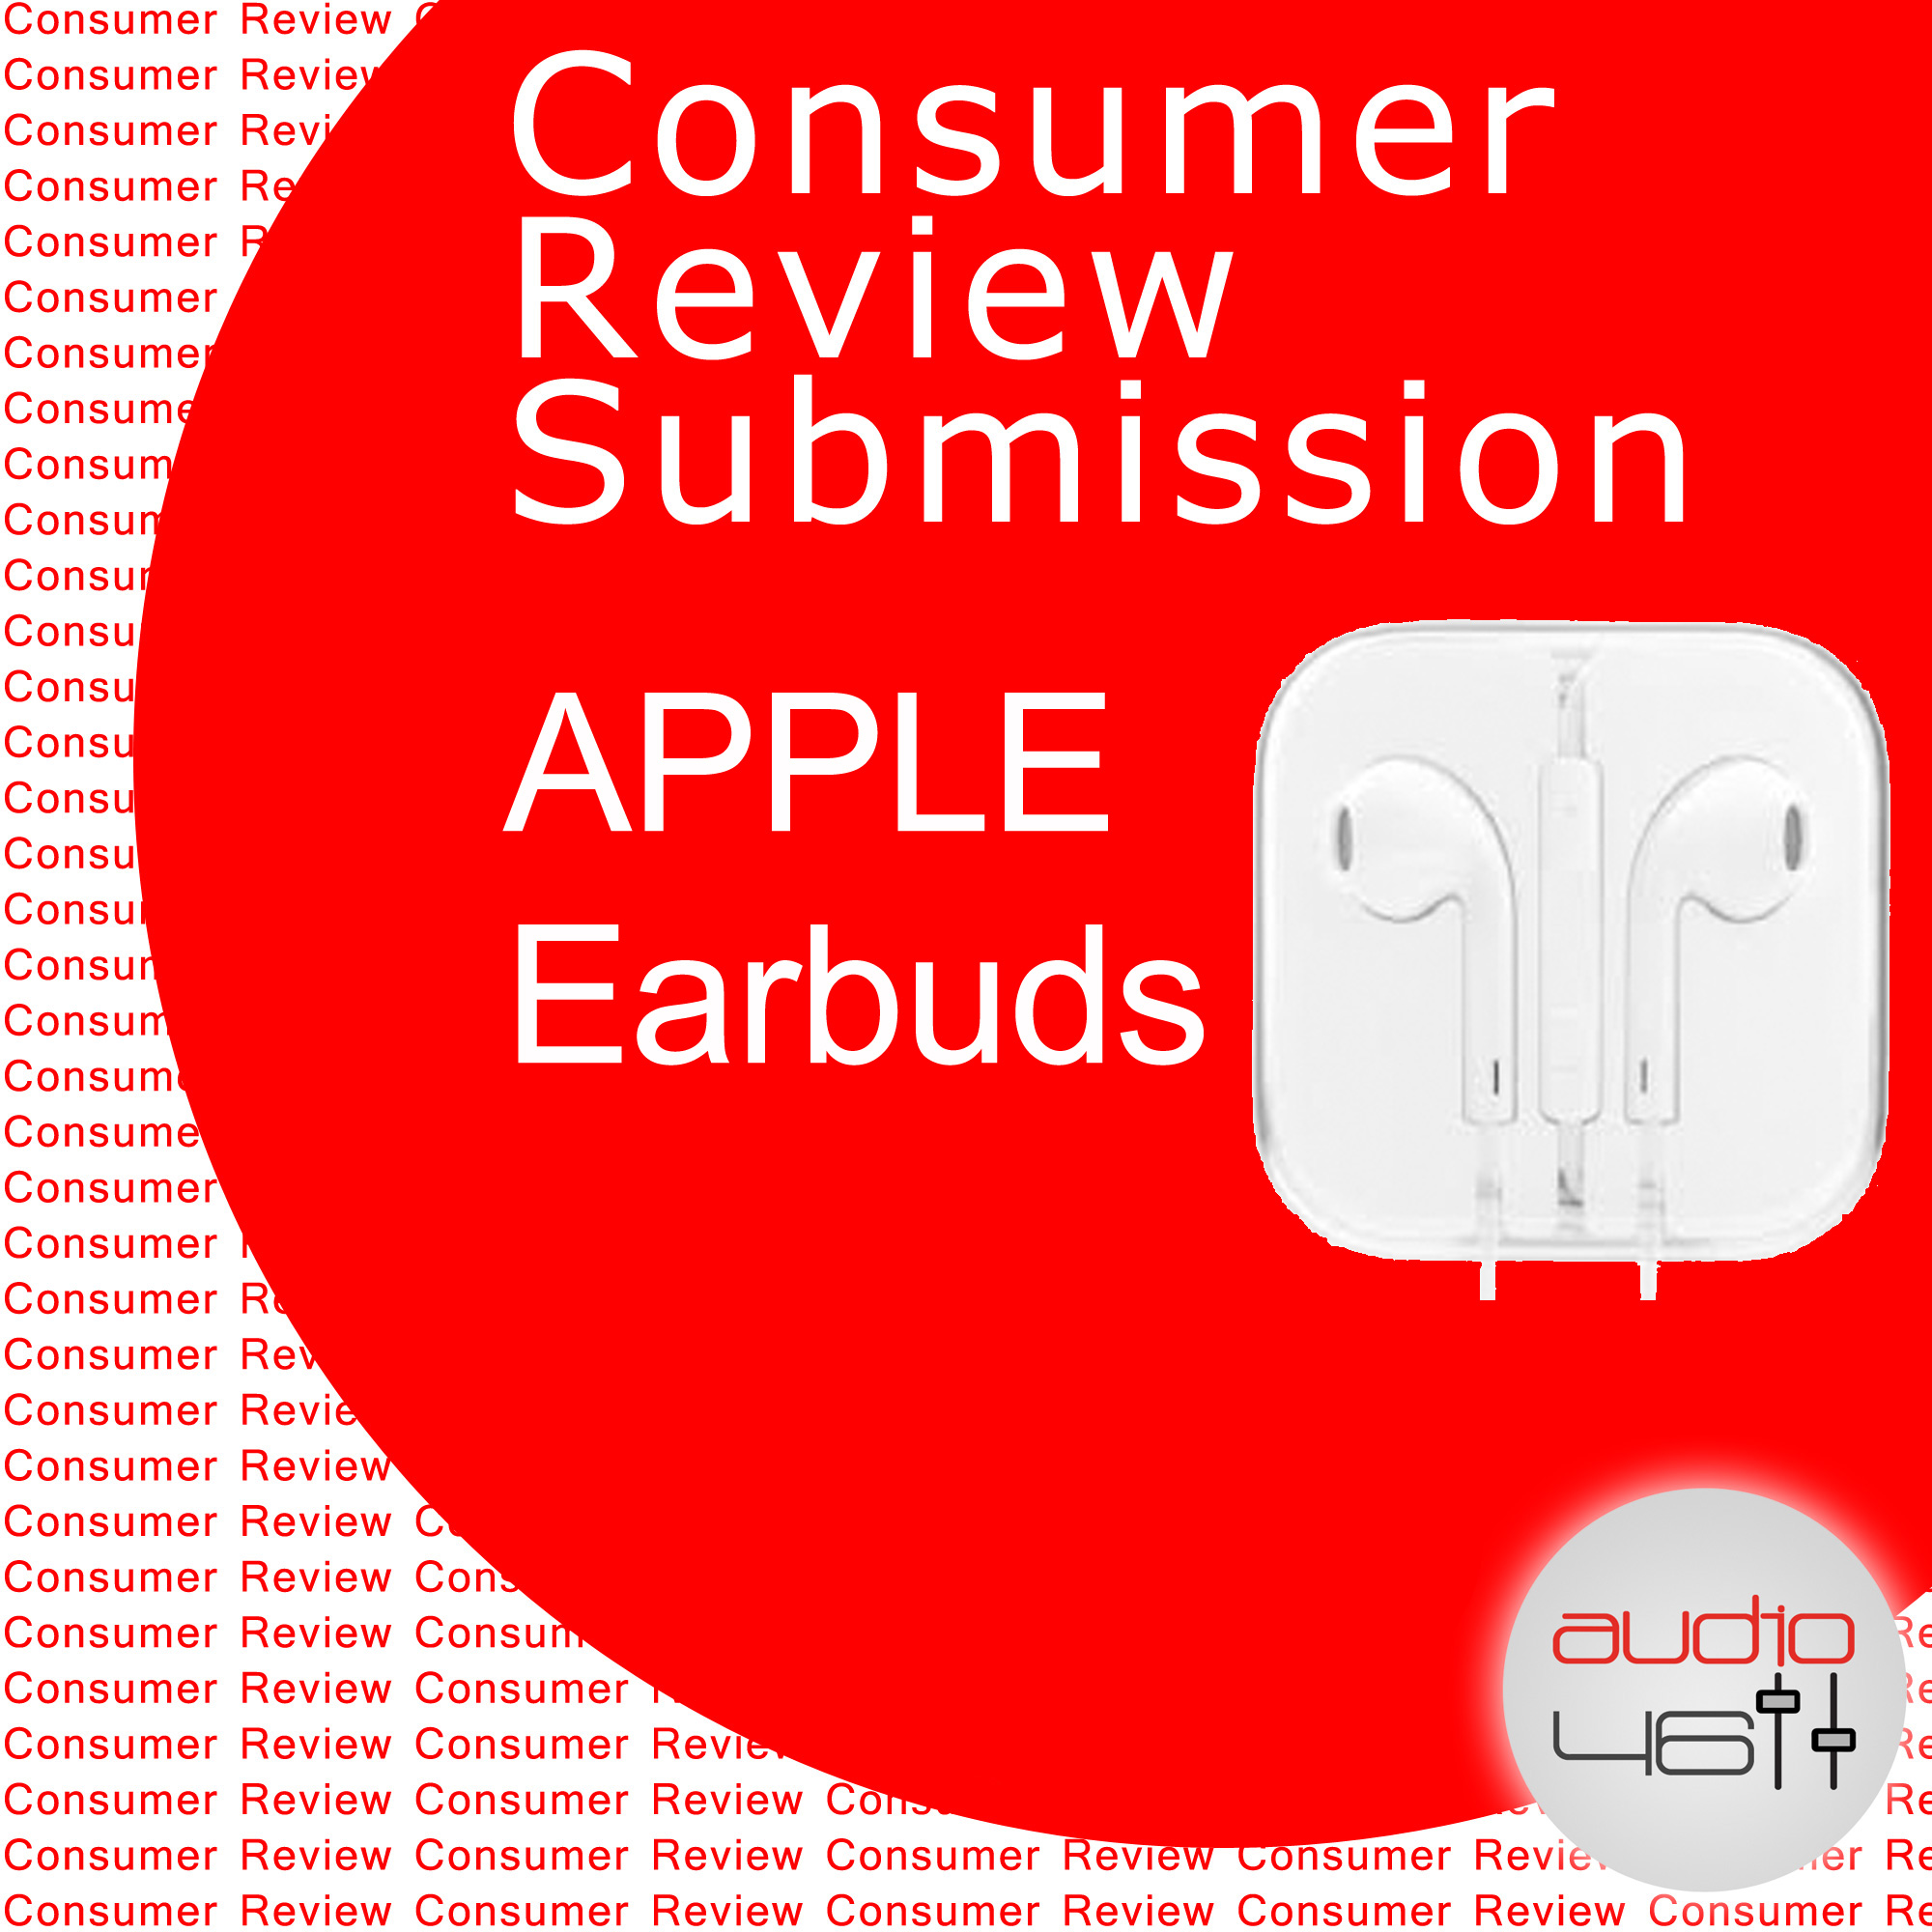 Consumer Review Apple Earbuds